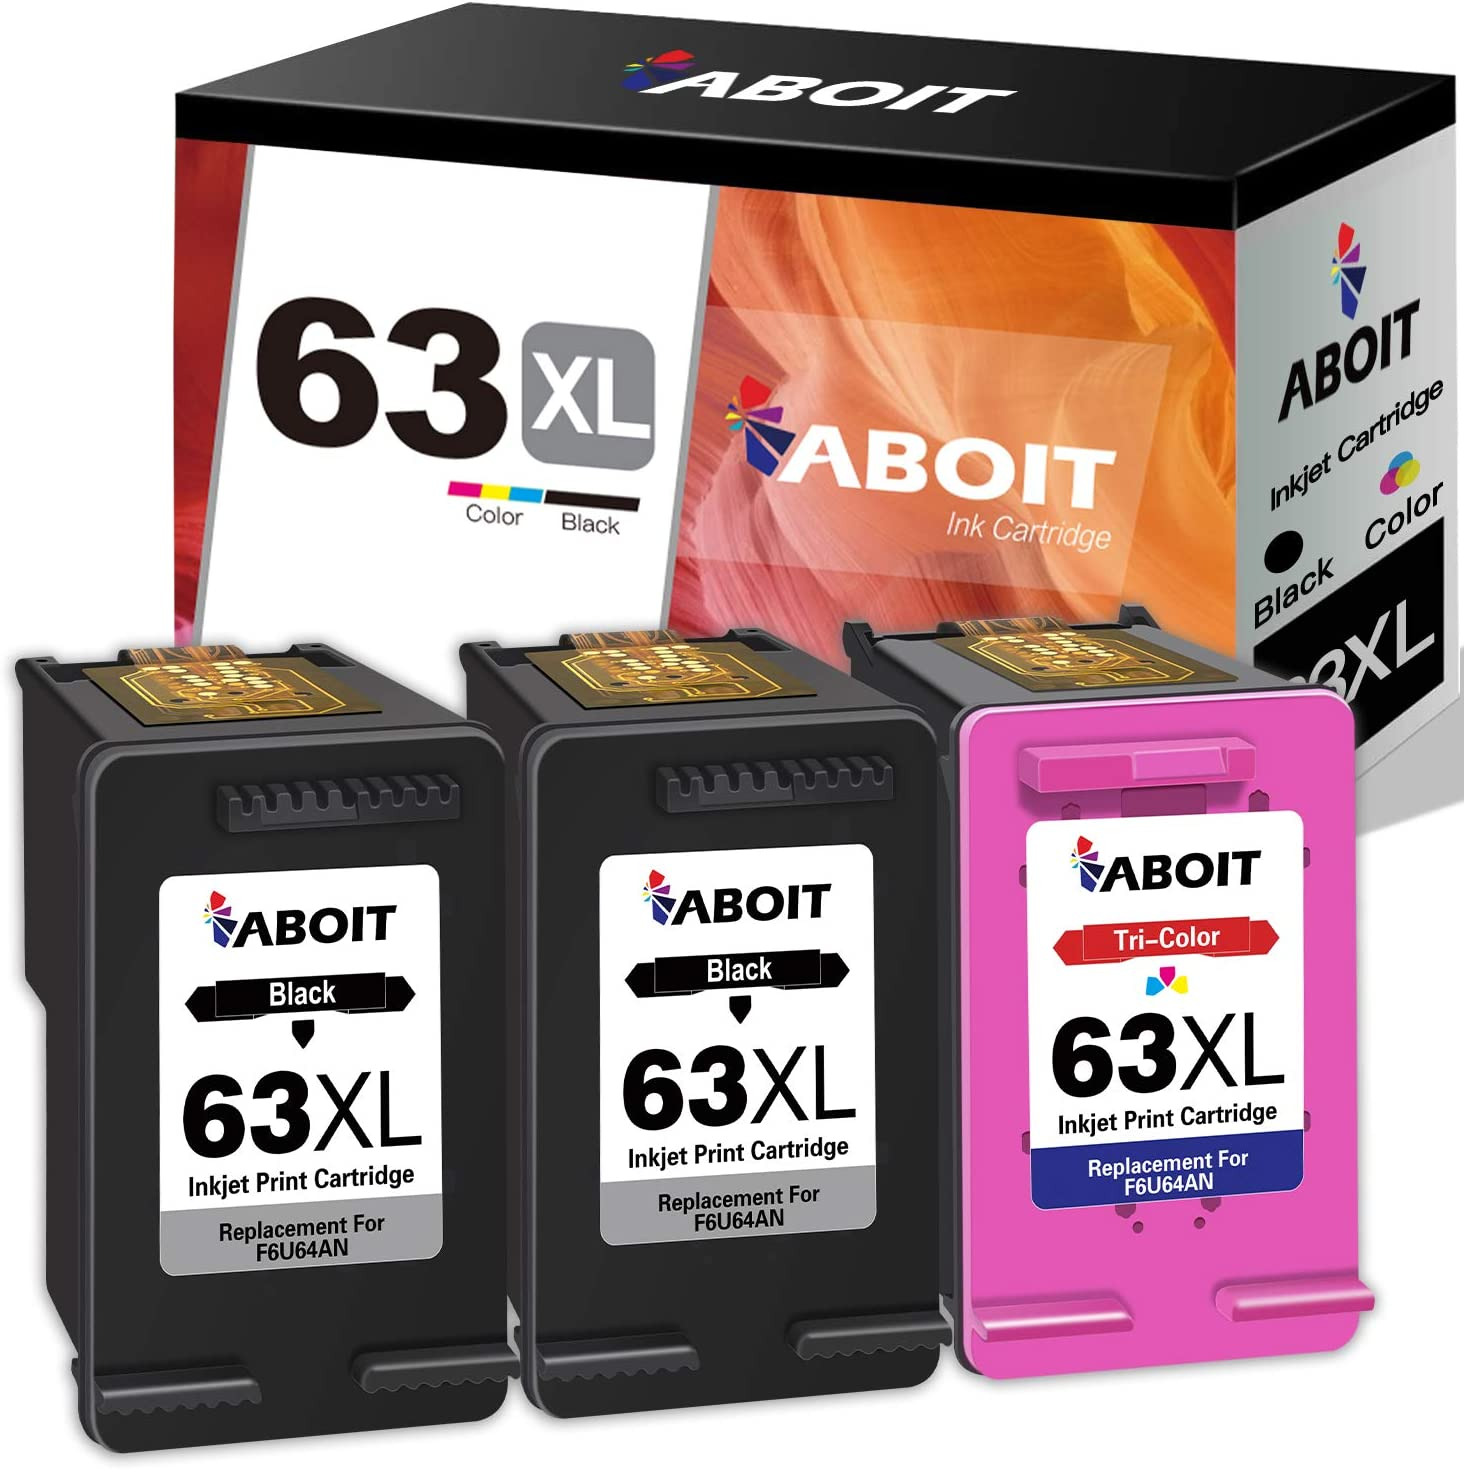 ABOIT Remaunfactured Ink Cartridge Replacement for HP 63XL 63 XL Ink to use with HP OfficeJet 3830 Envy 4520 4512 Officejet 4650 5255 Deskjet 1112 3634 3632 Printer (2 Black, 1 Tri-Color,3 Pack)